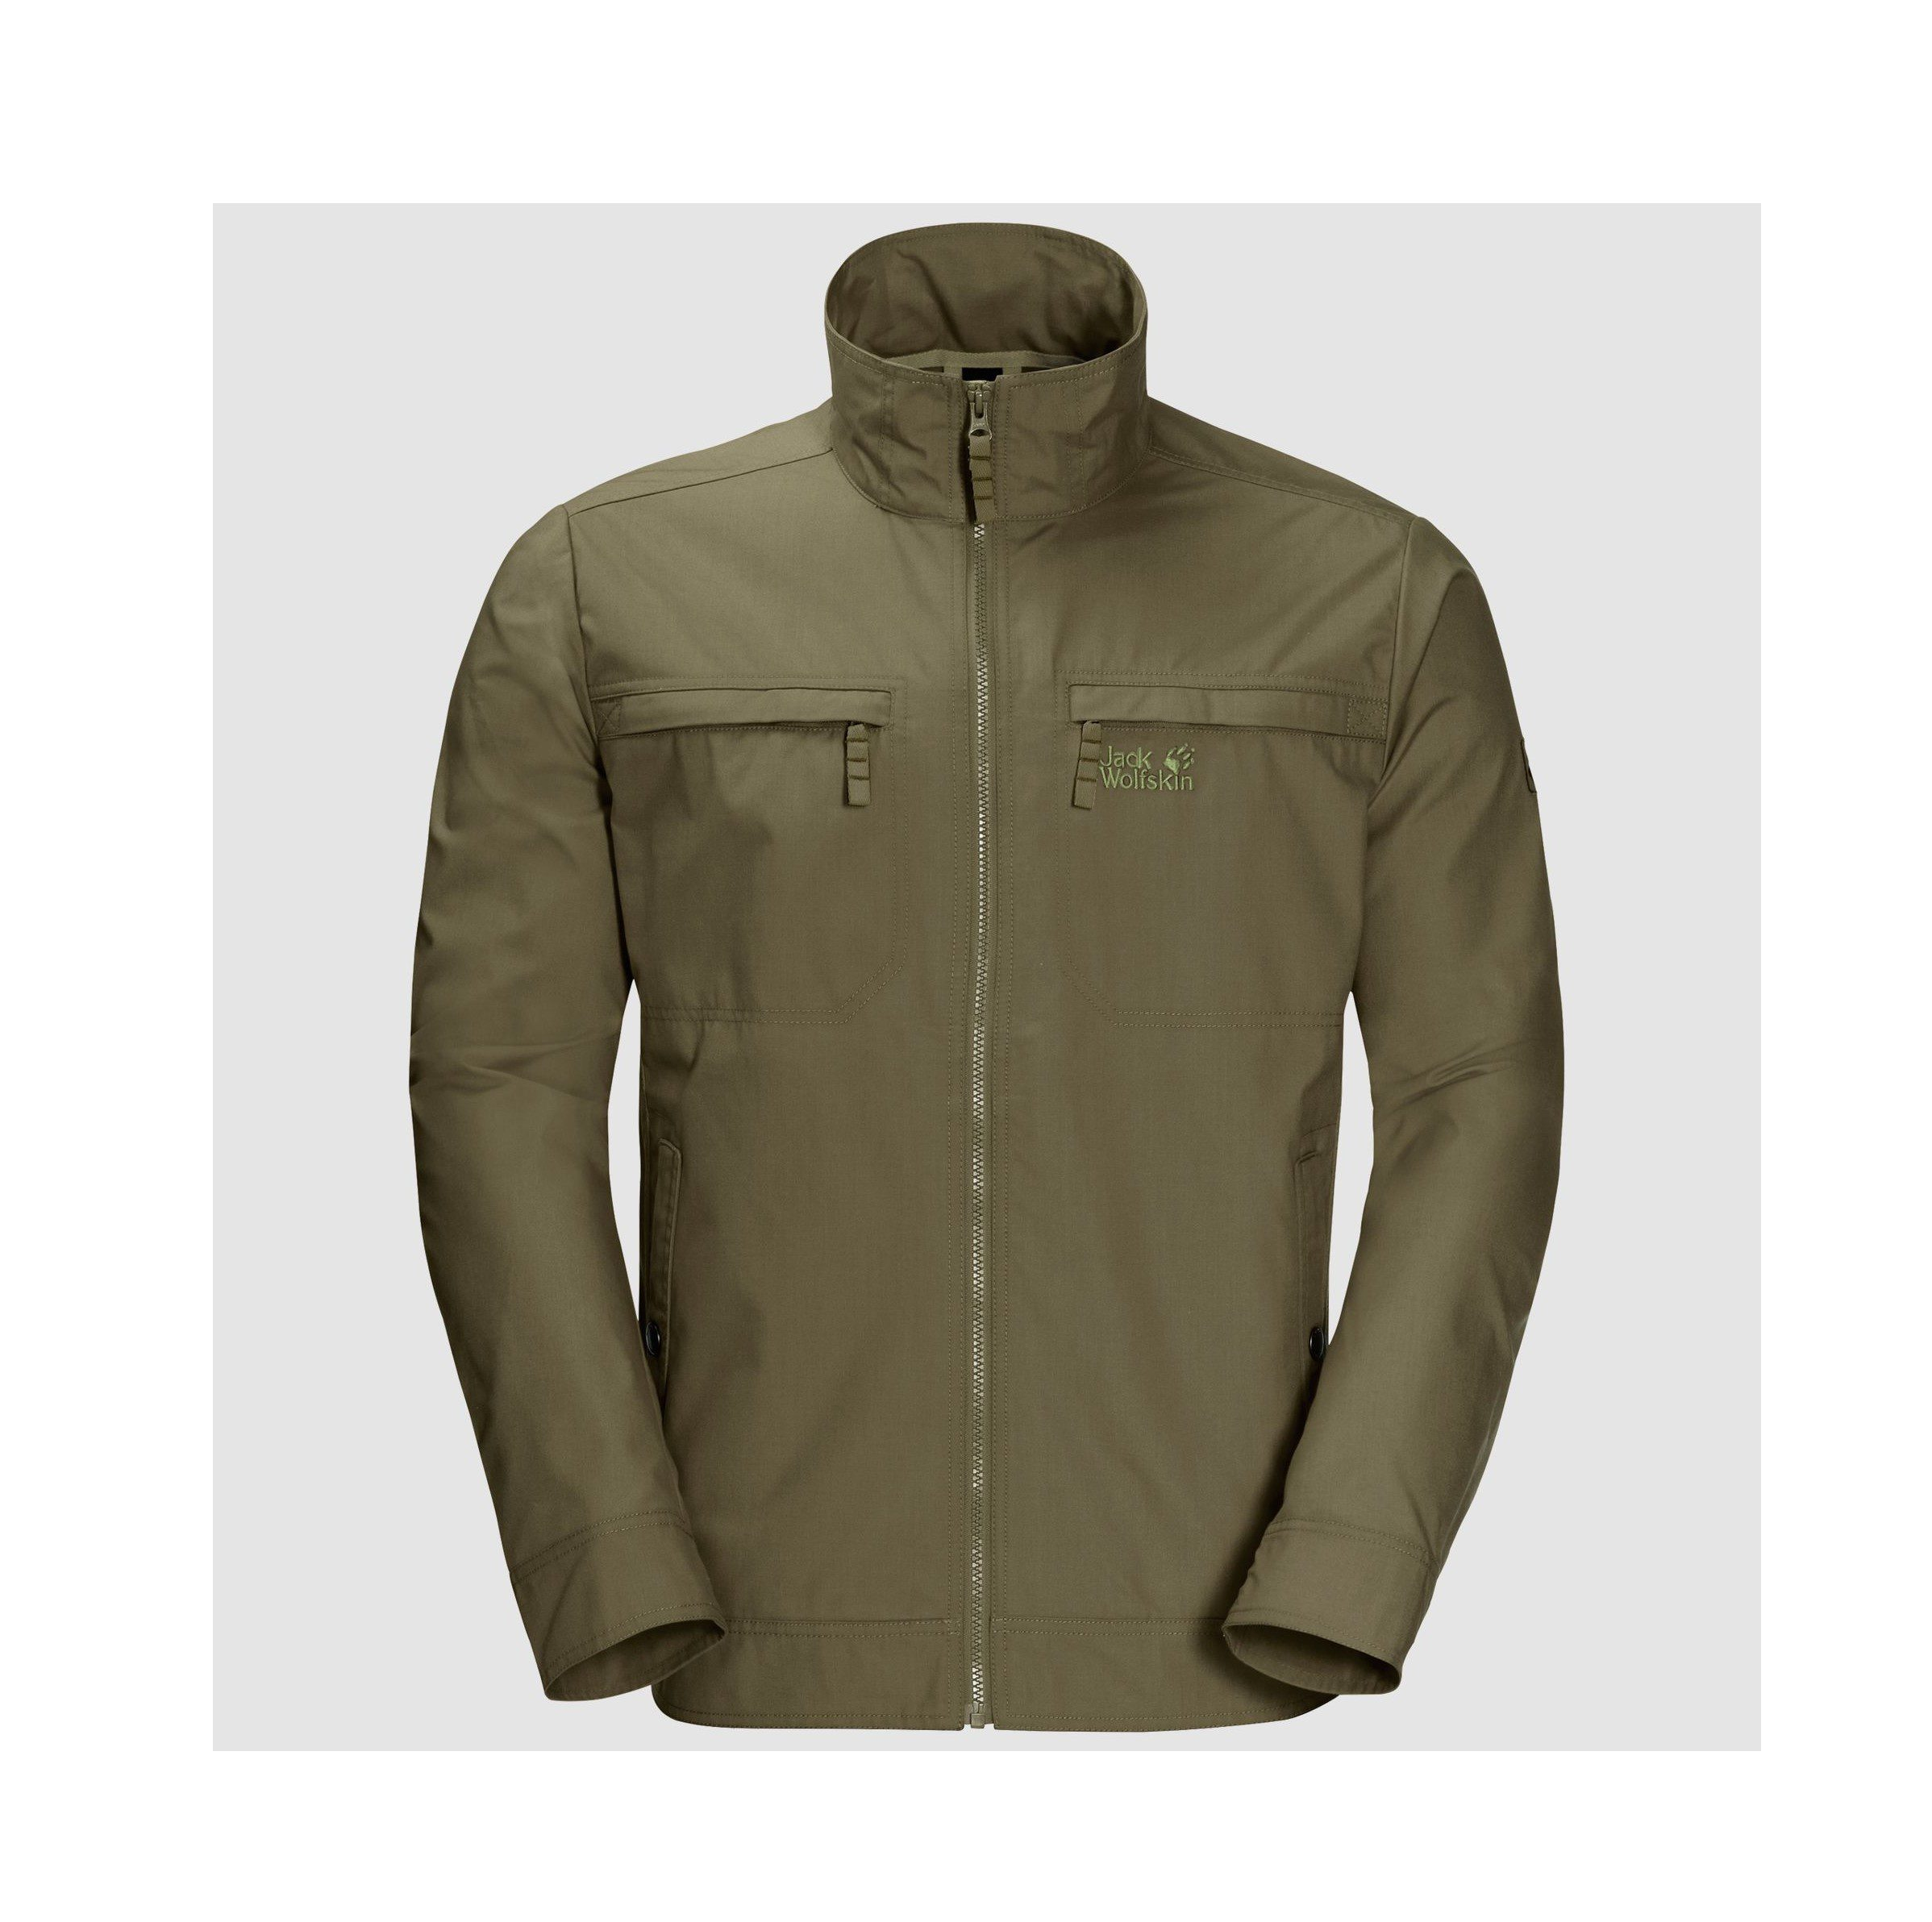 Jack Wolfskin Mens Camio Road Jacket - Burnt Olive